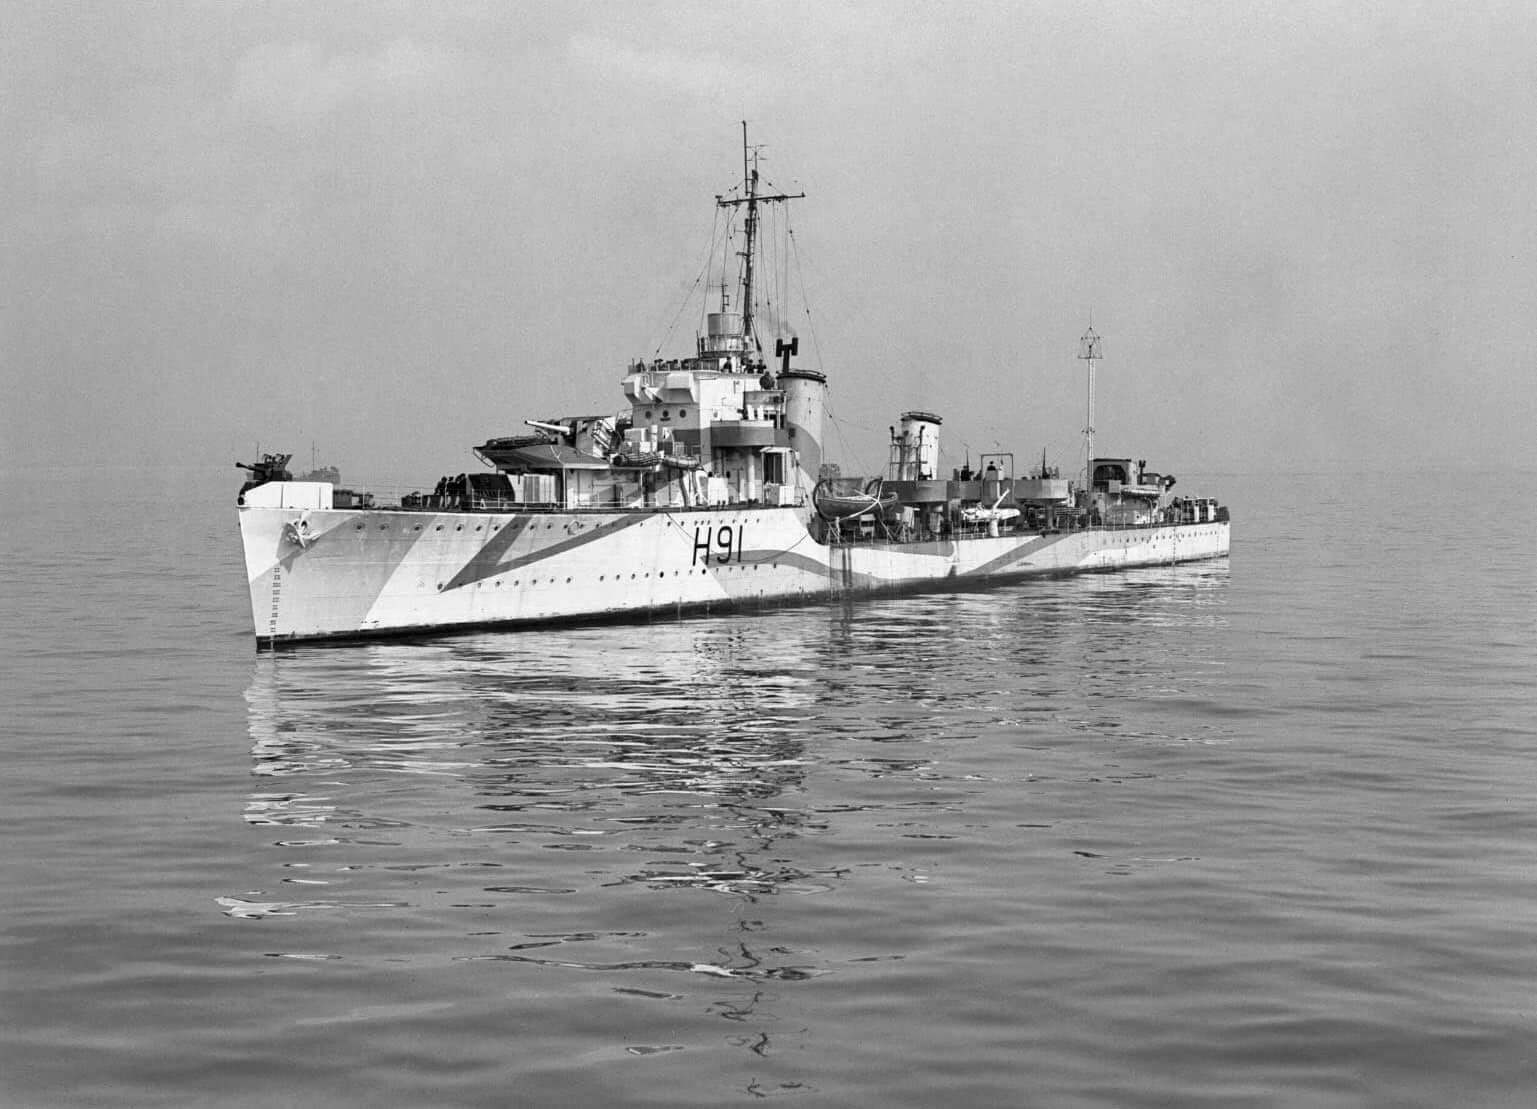 HMS Bulldog at sea